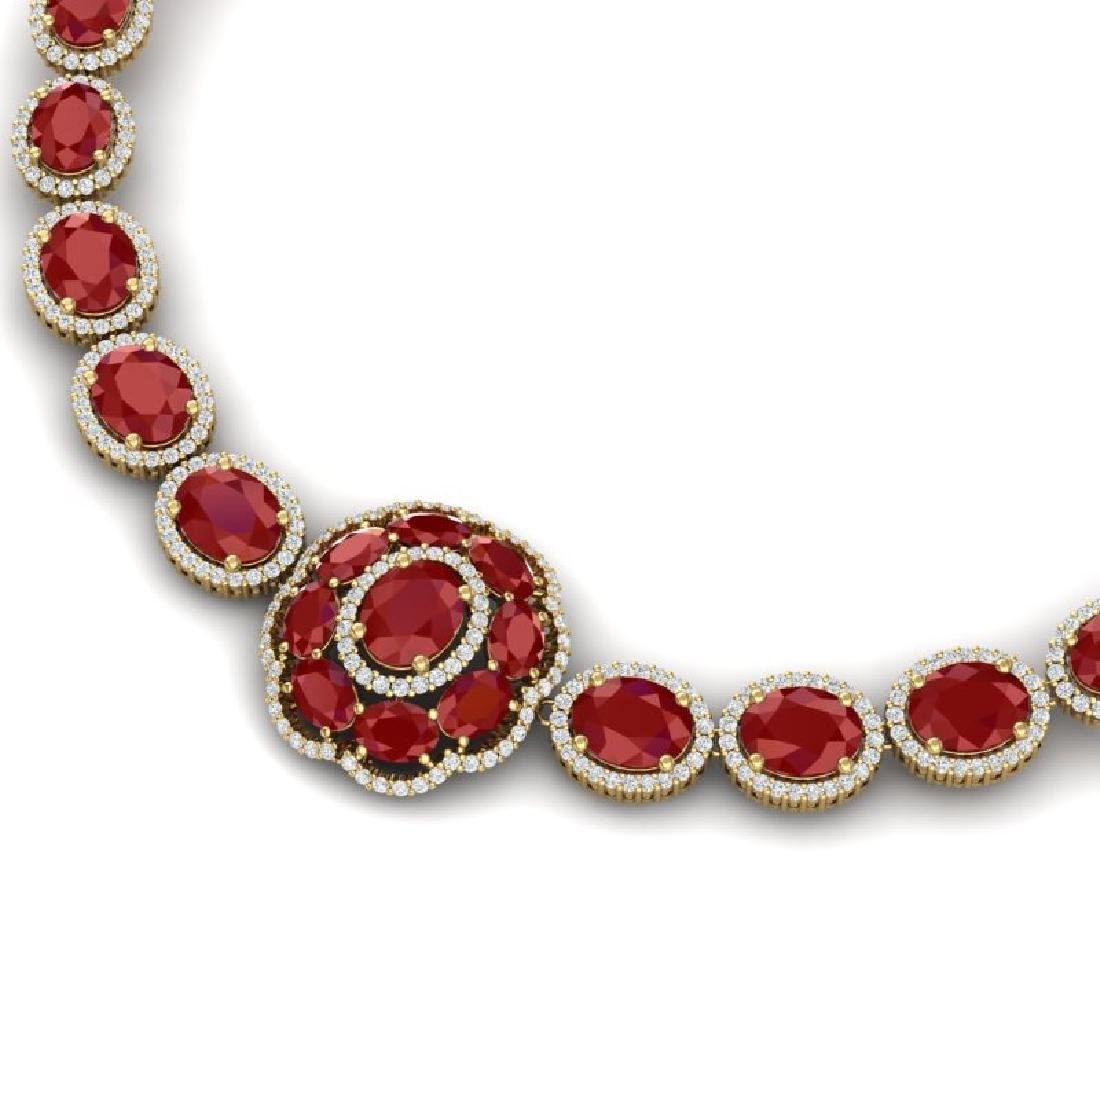 58.33 CTW Royalty Ruby & VS Diamond Necklace 18K Yellow